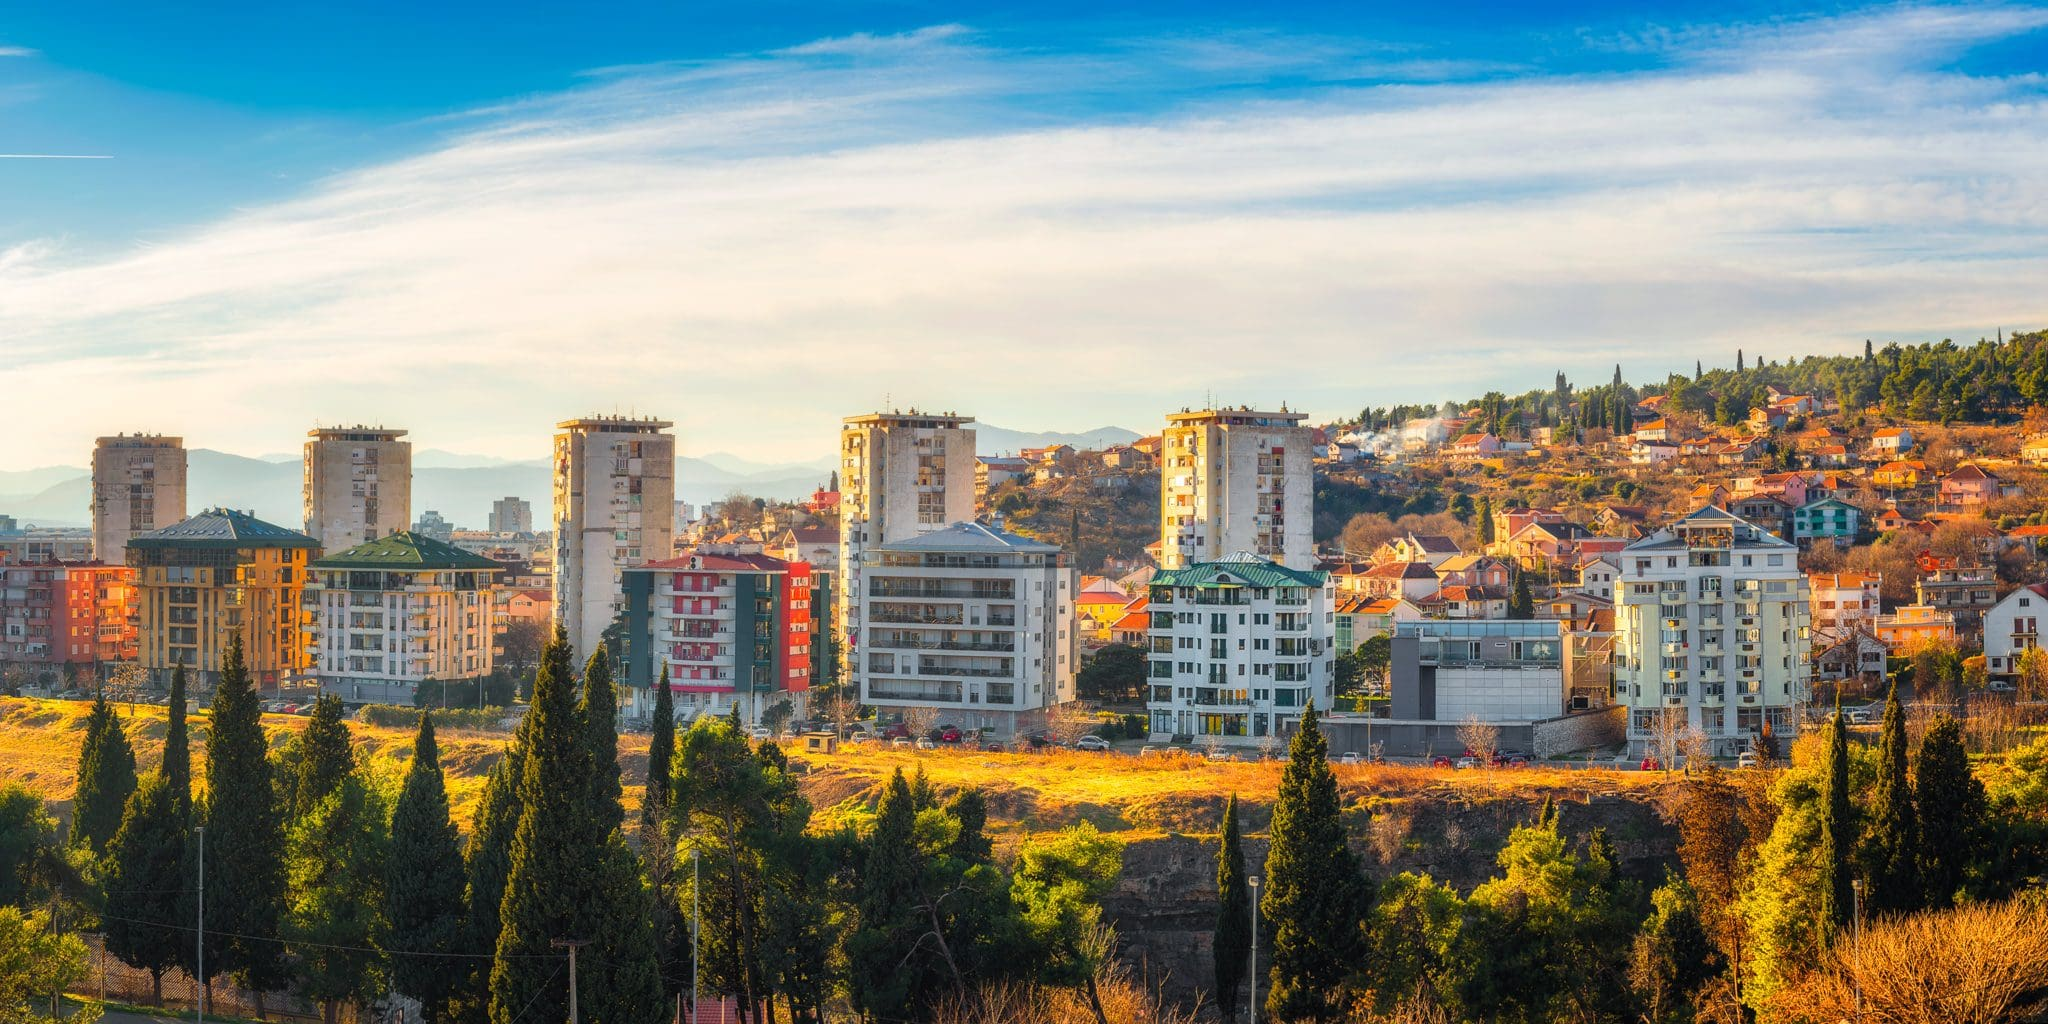 Photo of Podgorica, capital of Montenegro - architecture and mountains in background